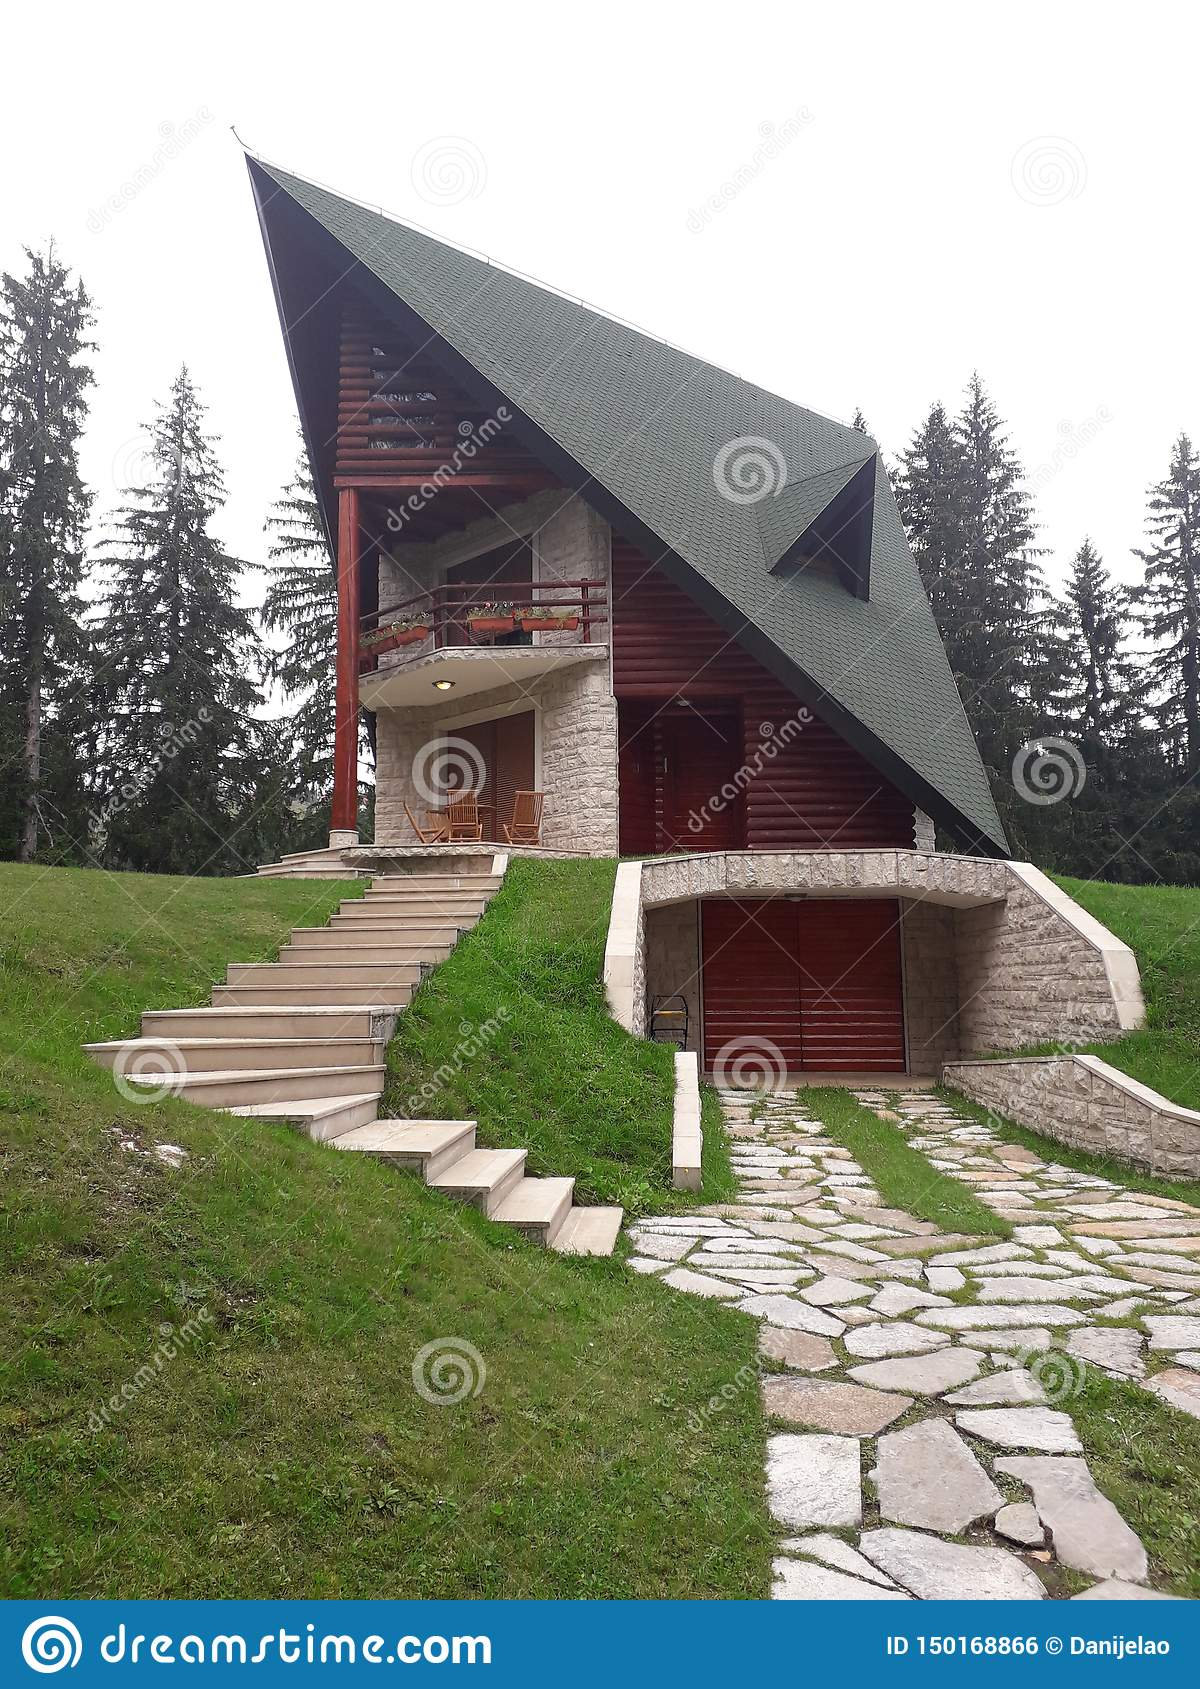 A mountain beautiful  house on a hill is located in the forest next to the lake